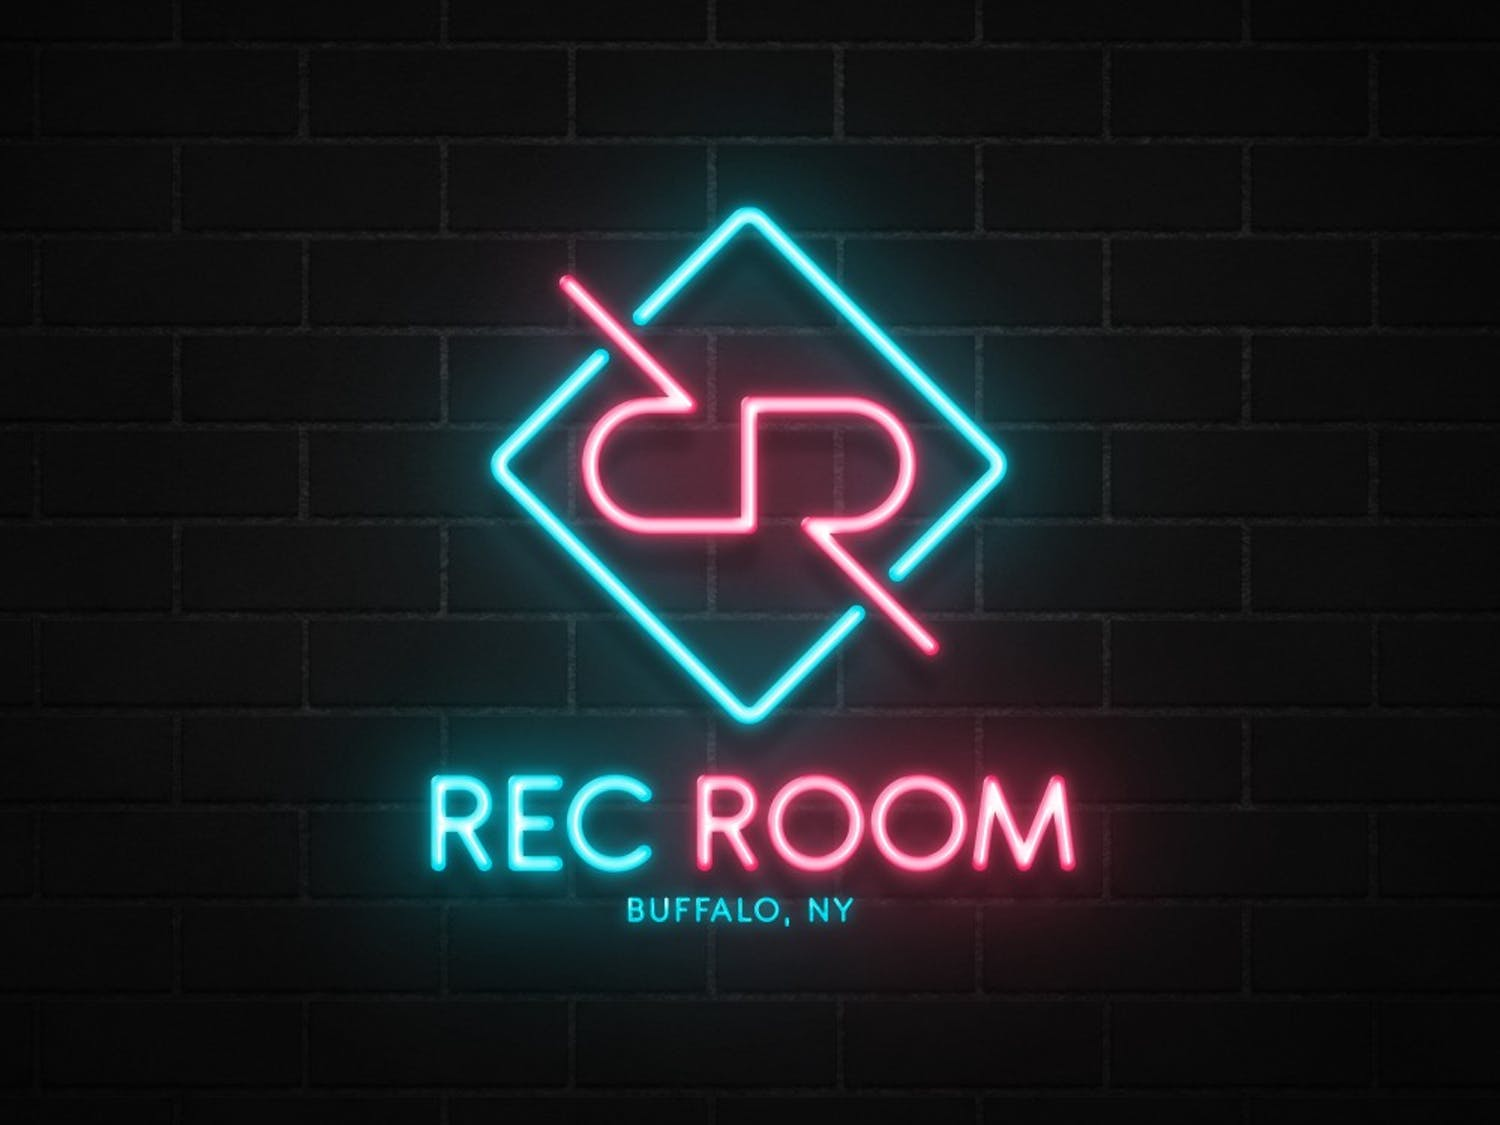 Former Waiting Room owner Chris Ring is back with a new venue, Rec Room, which opens this September. Ring hopes the venue will continue Waiting Room traditions, still bringingnational acts to Buffalo.